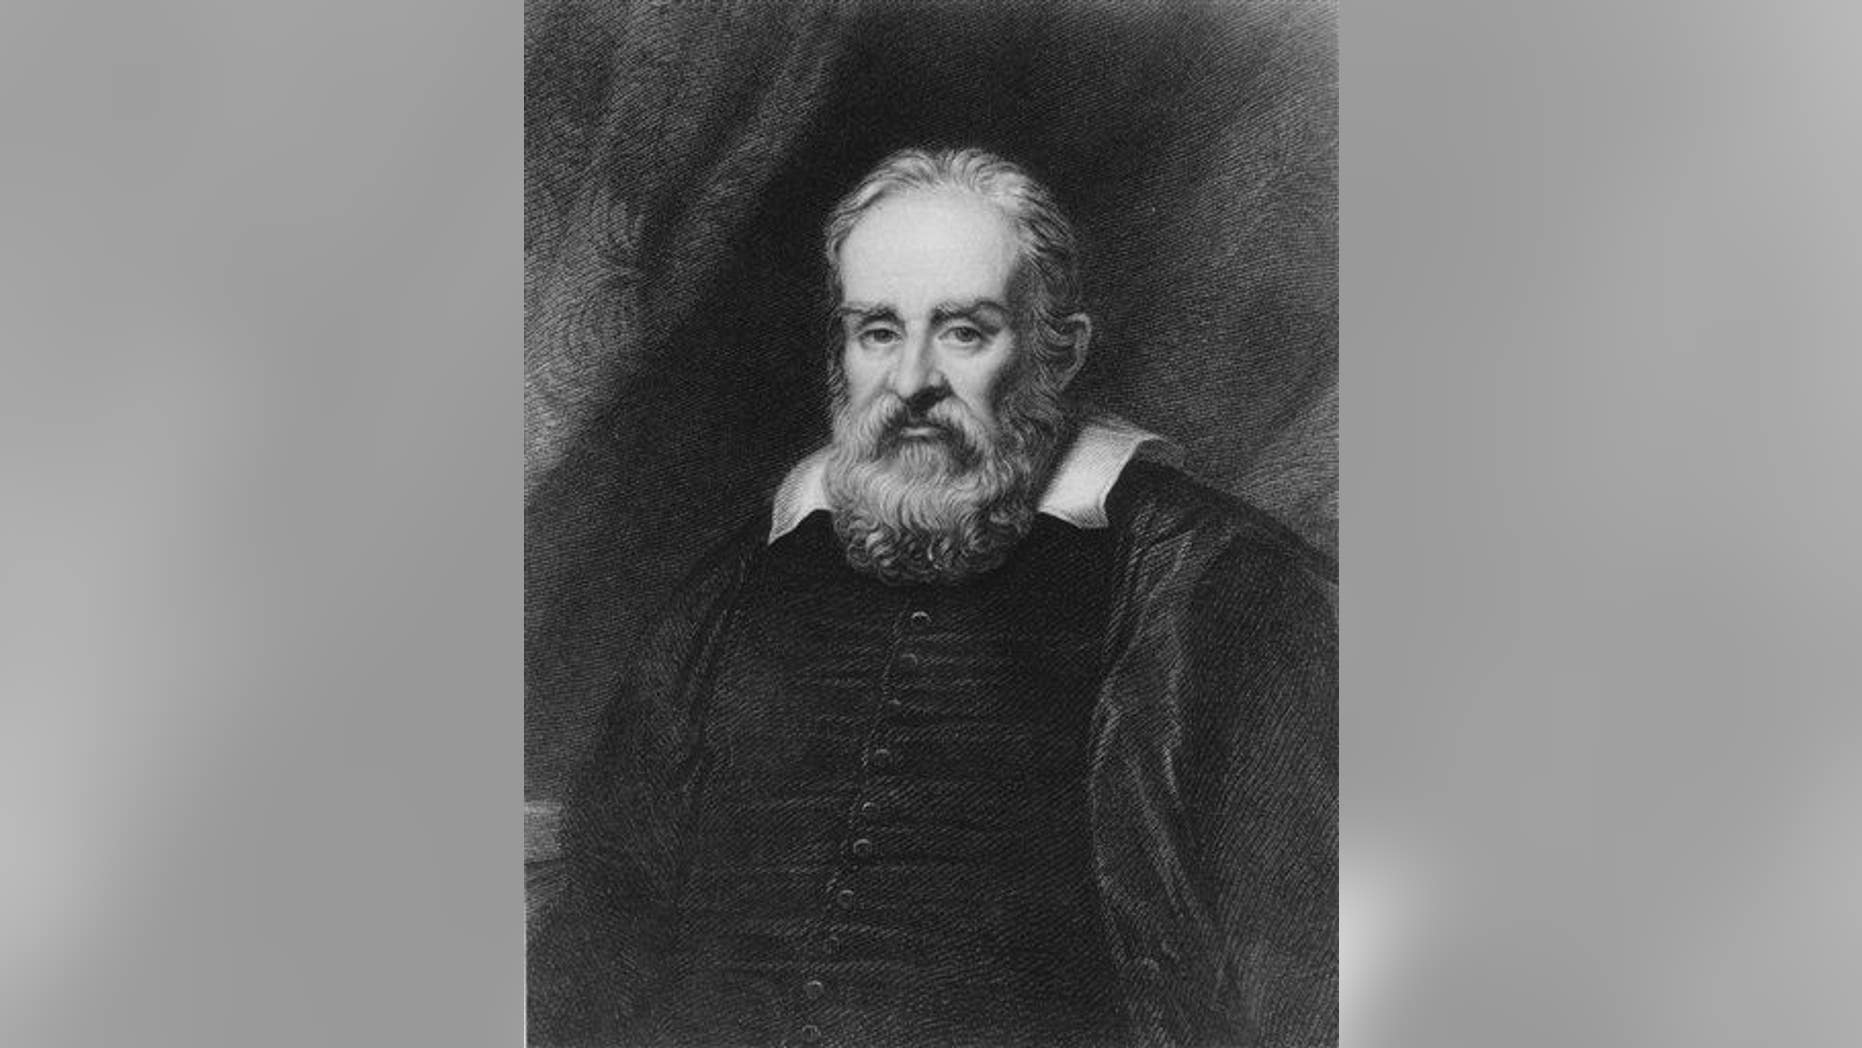 This undated file image shows an etching of astronomer Galileo Galilei.